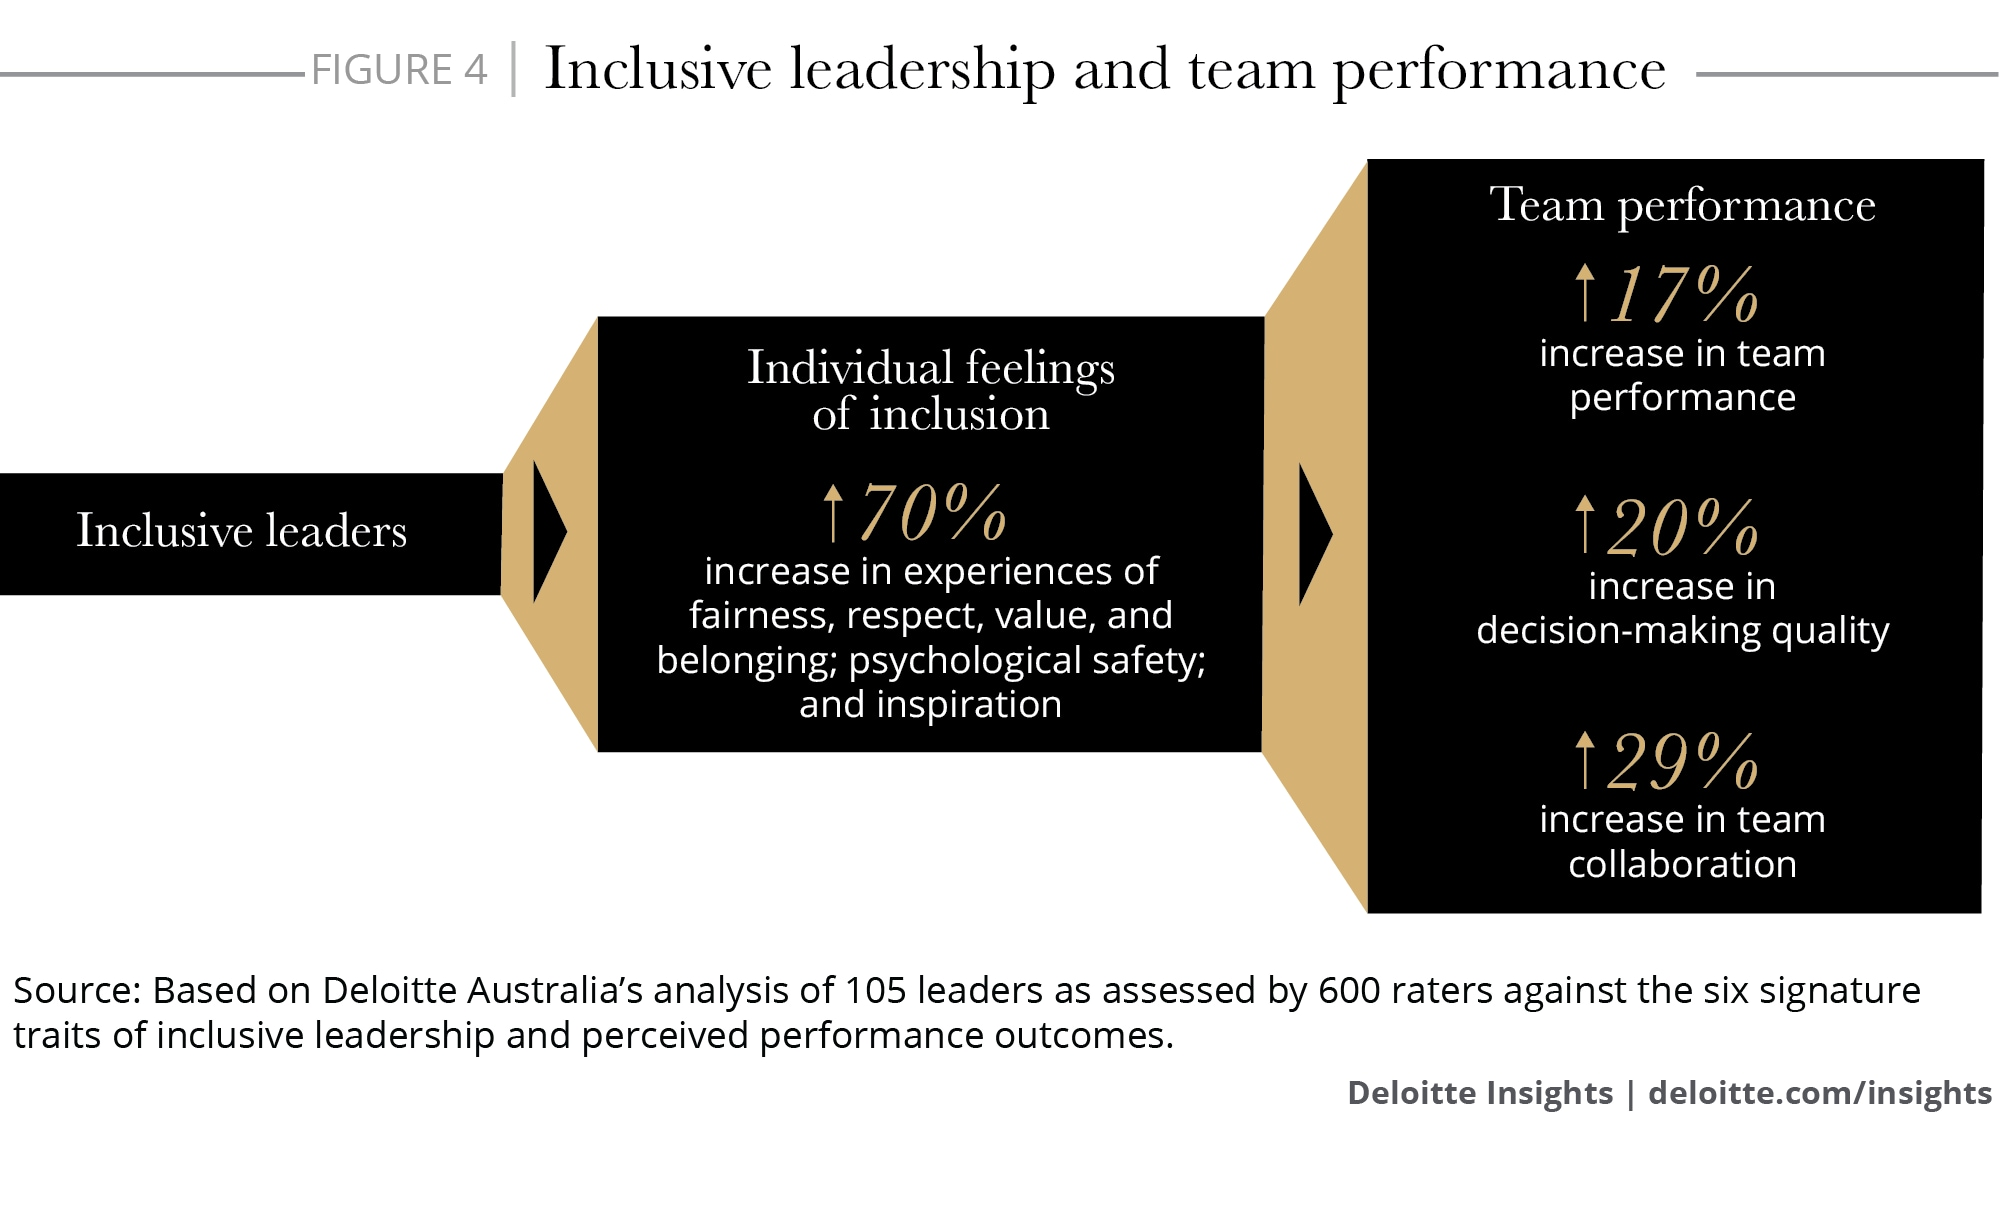 Inclusive leadership and team performance